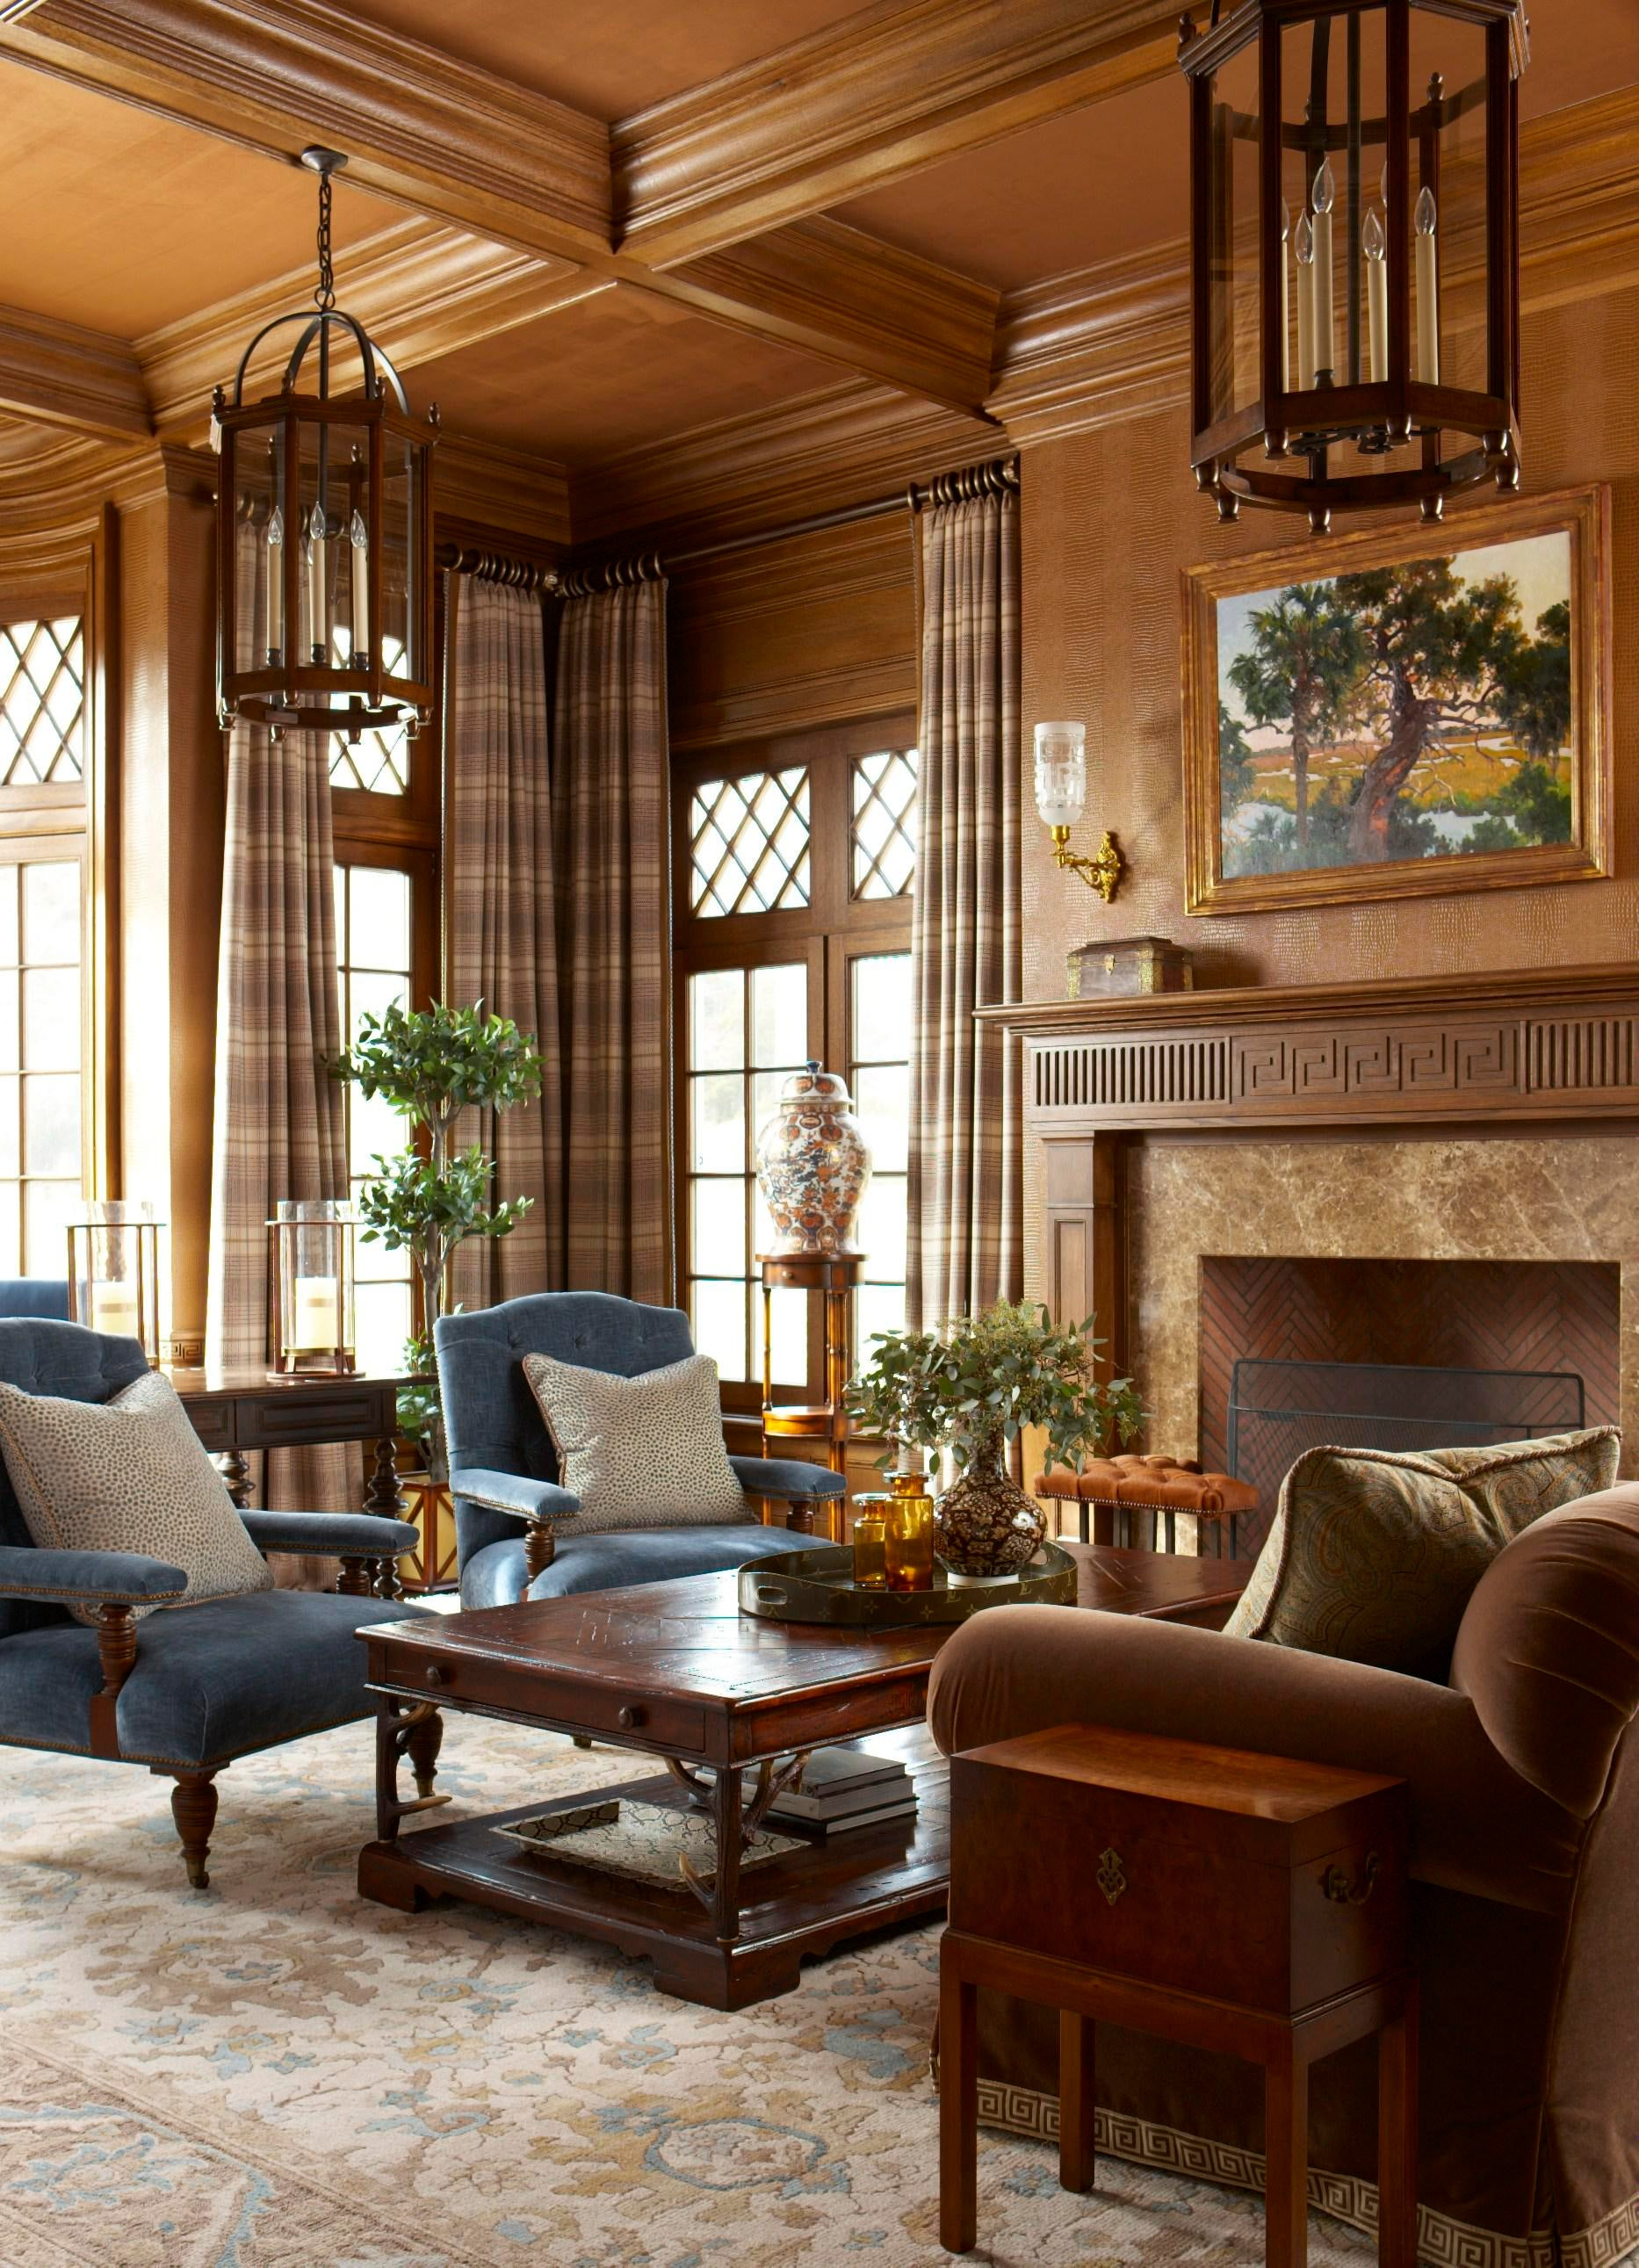 Study Library Living Home Office Contemporary Transitional Traditional By  Rinfret Limited Interior Design U0026 Decoration LLC